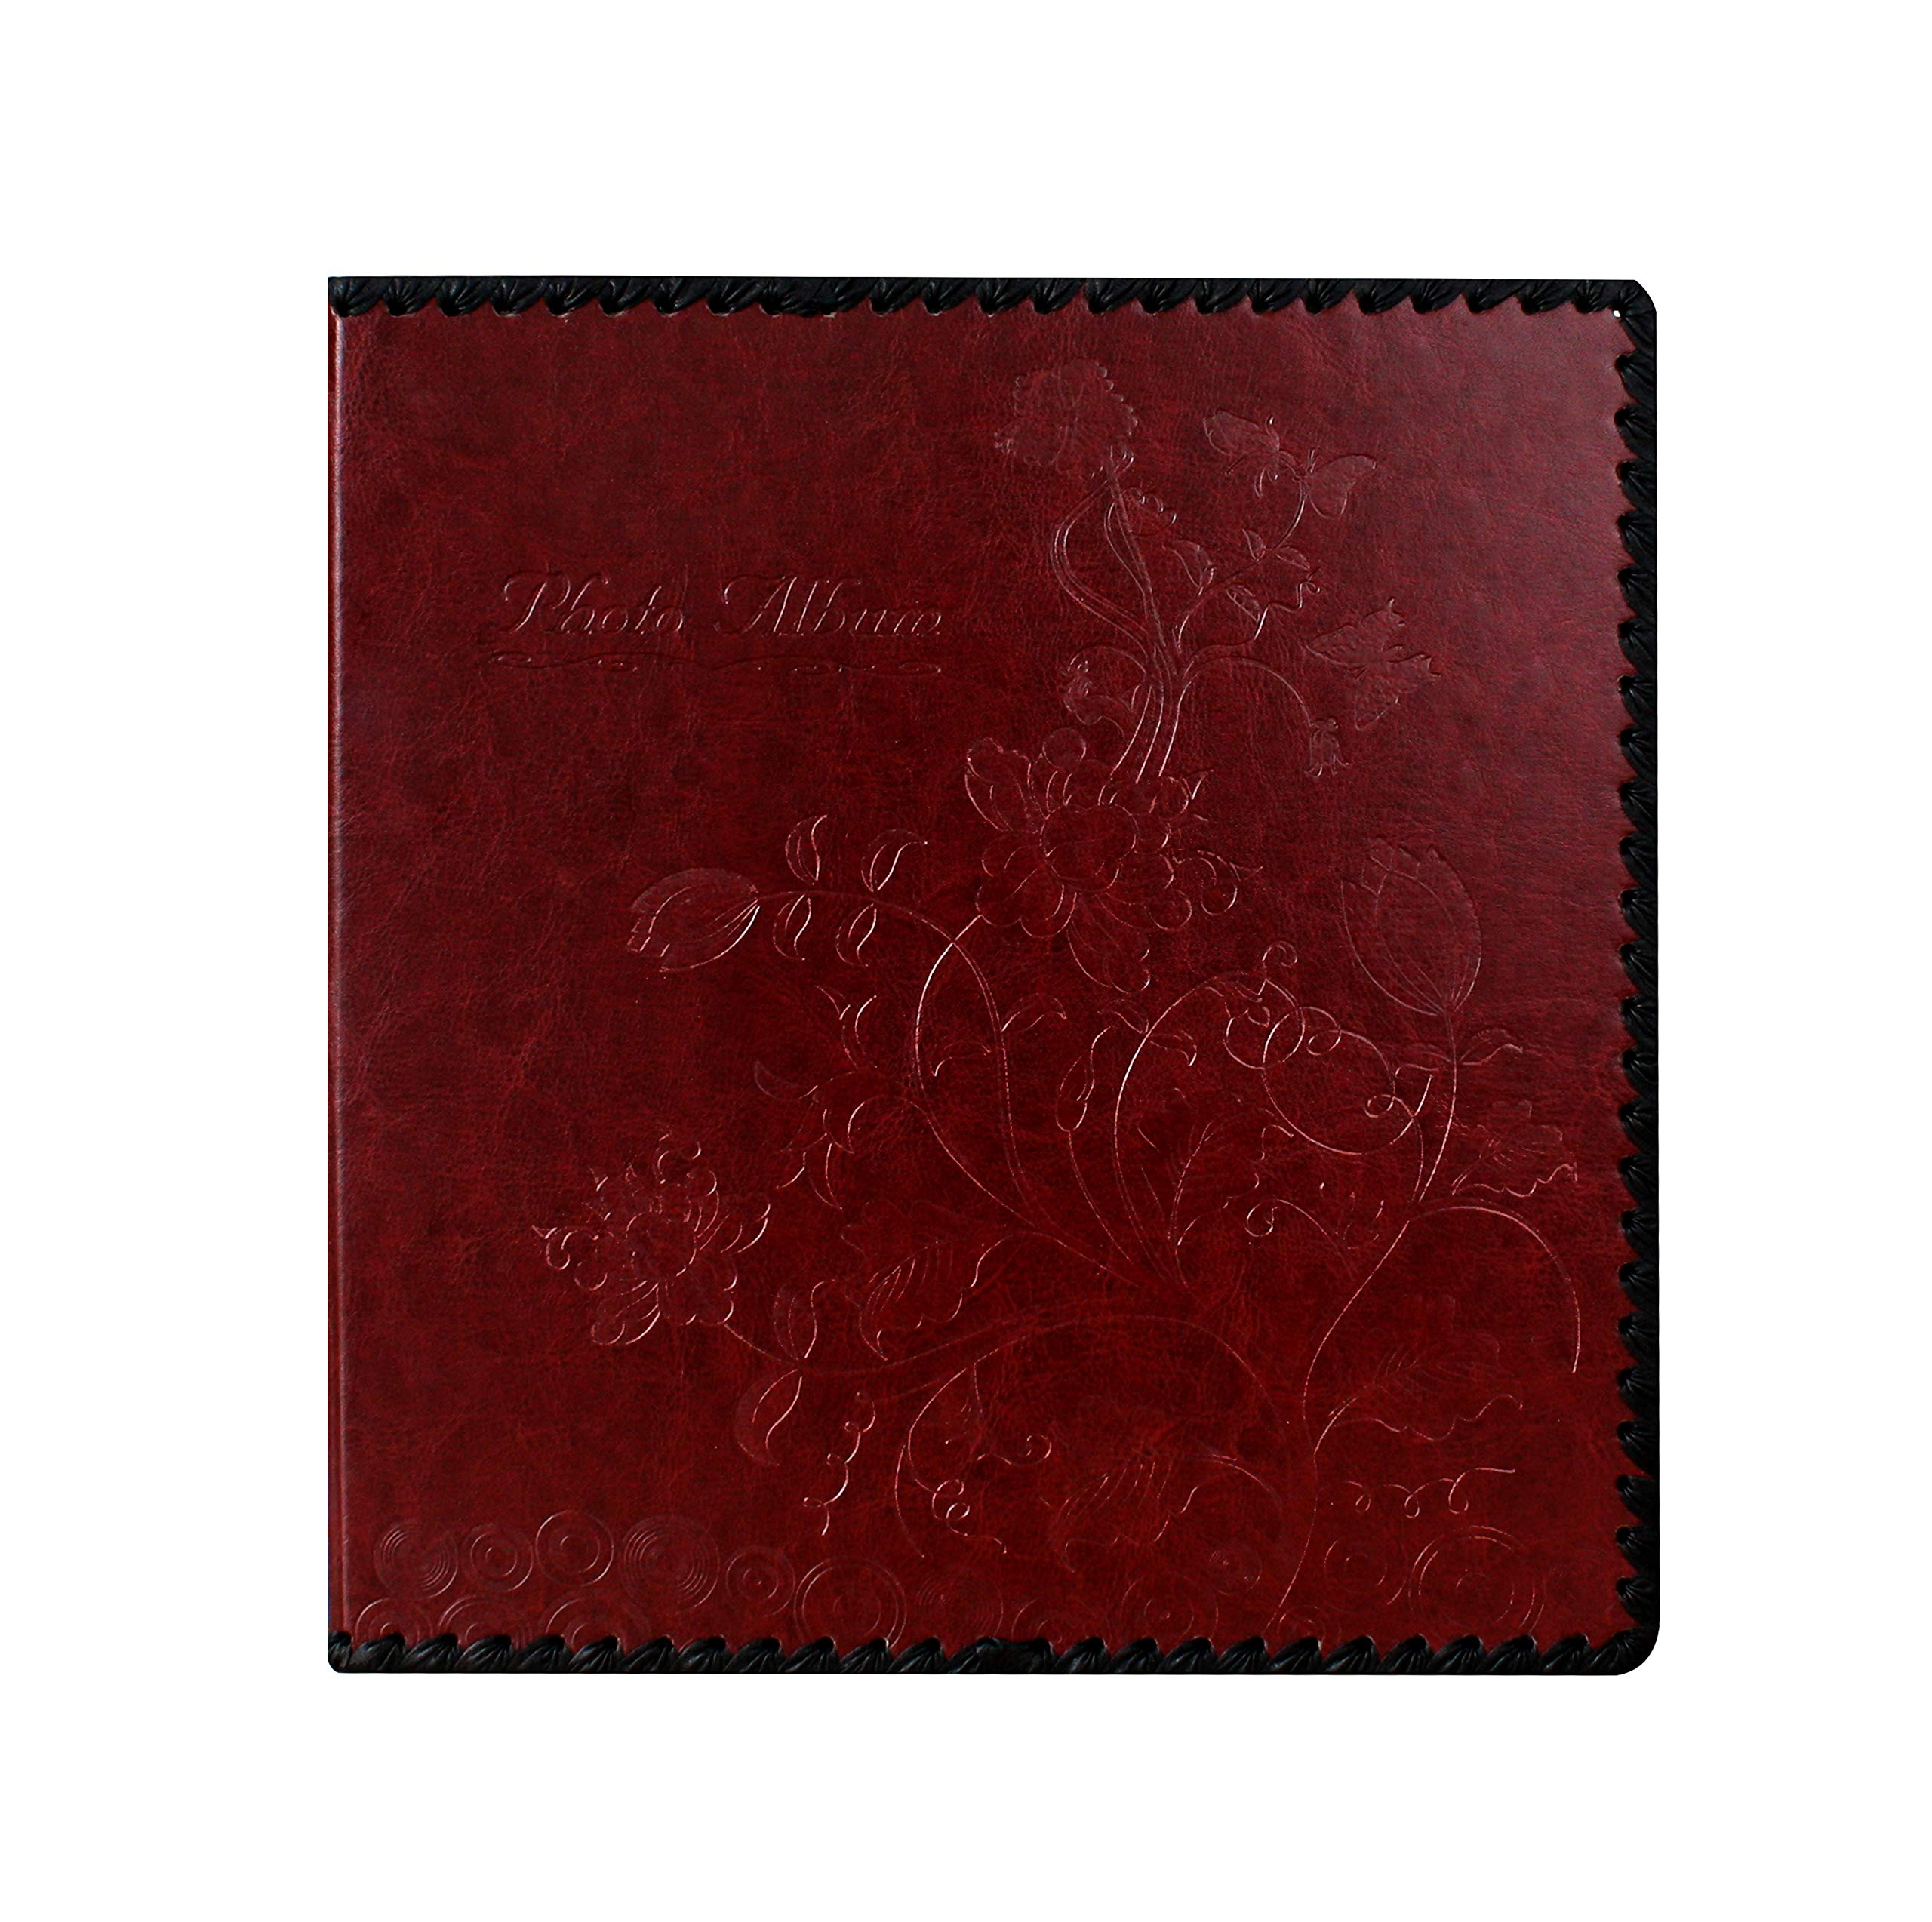 Beautyus Photo Album Book, Family Album, Leather Cover, Holds 3x5, 4x6, 5x7, 6x8, 8x10 Photos (Wine Red, M)